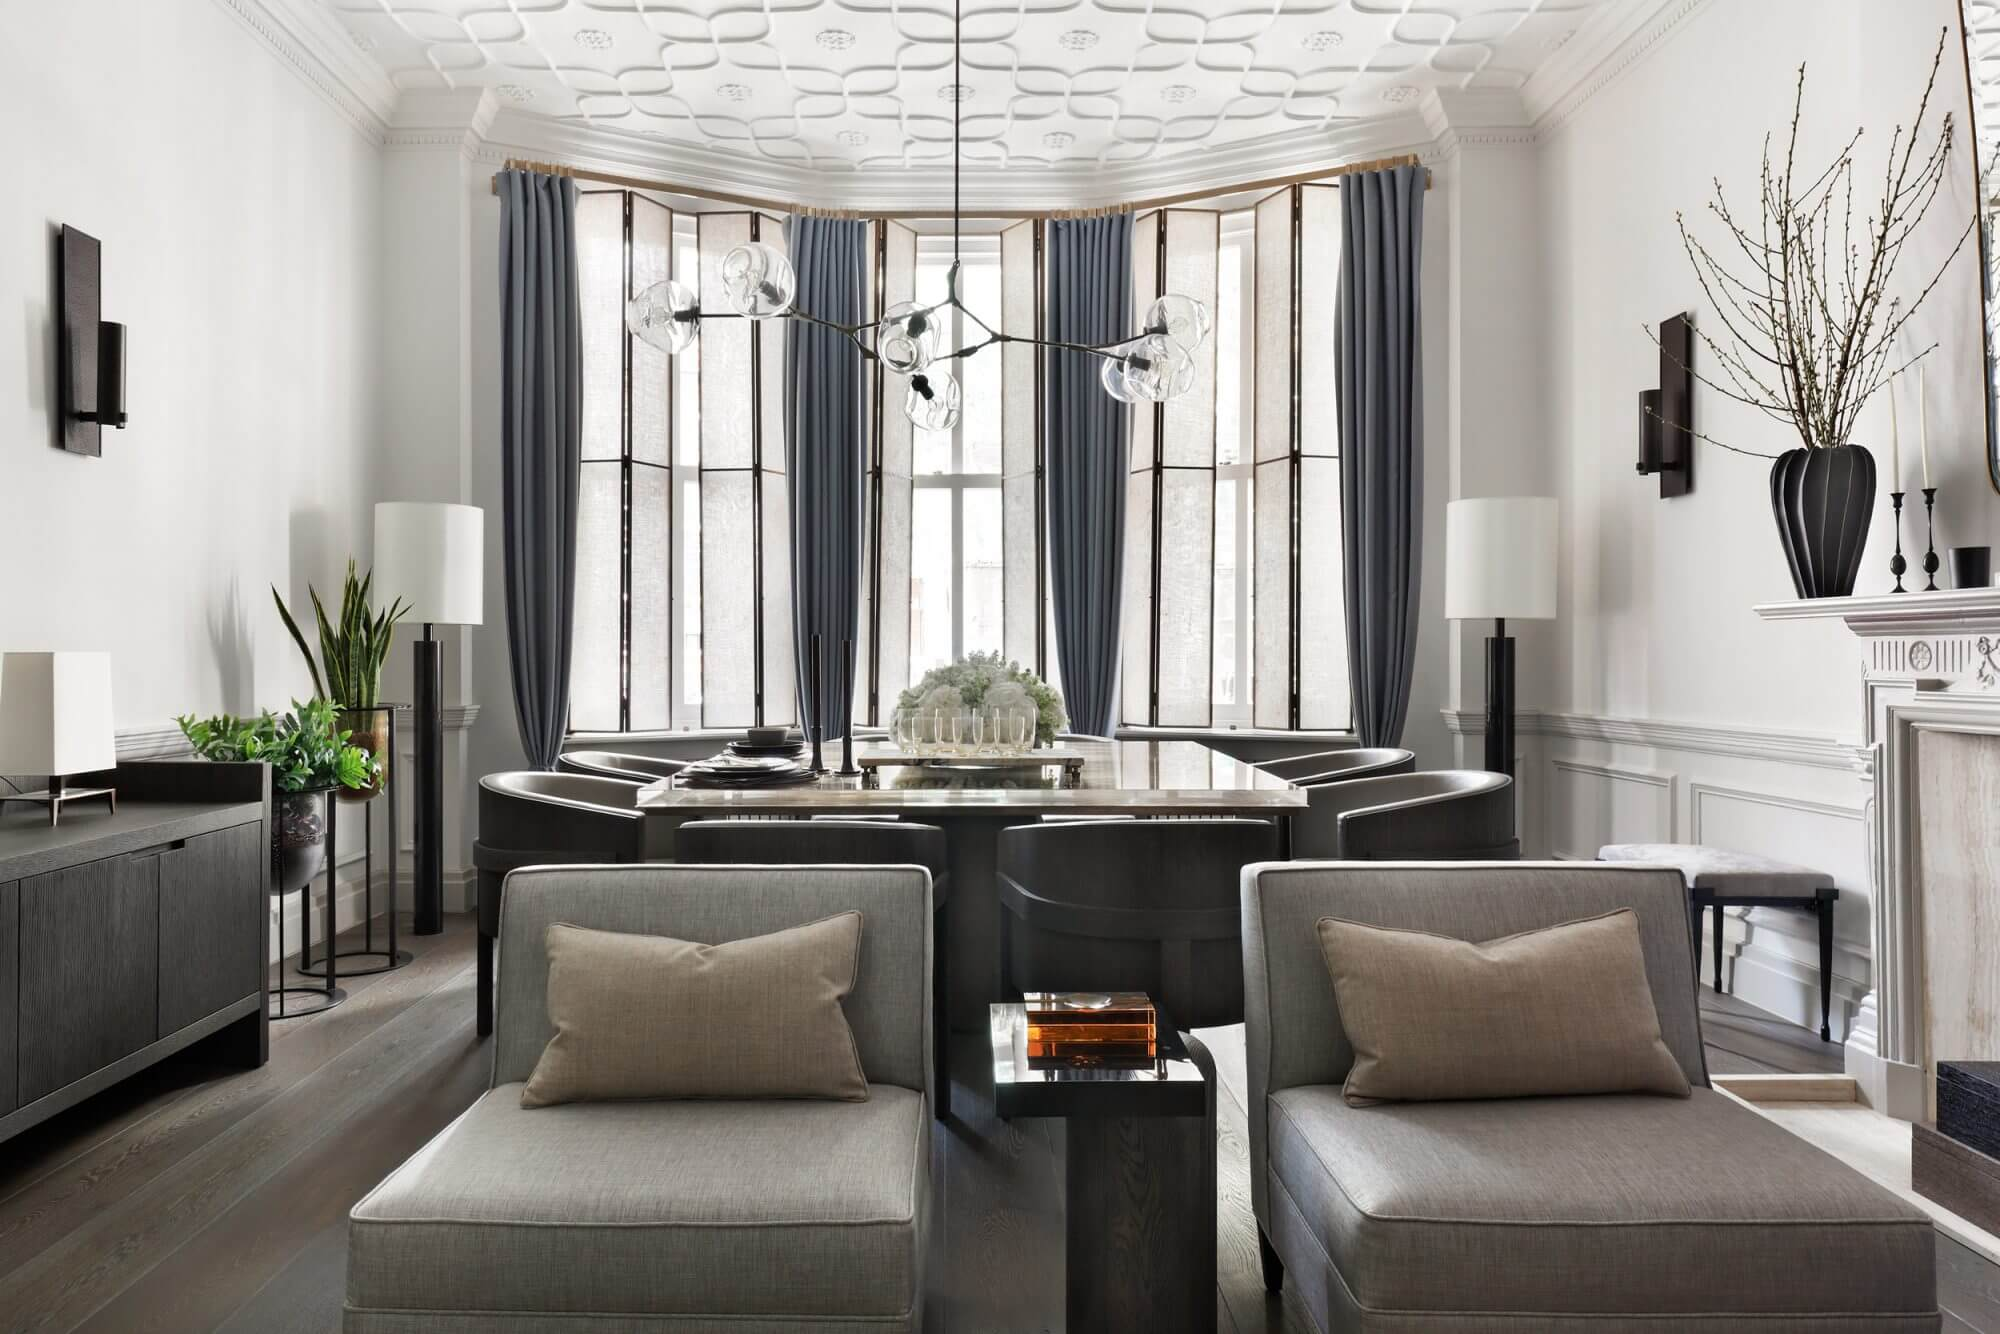 High end interior designers london for High end interior designers london